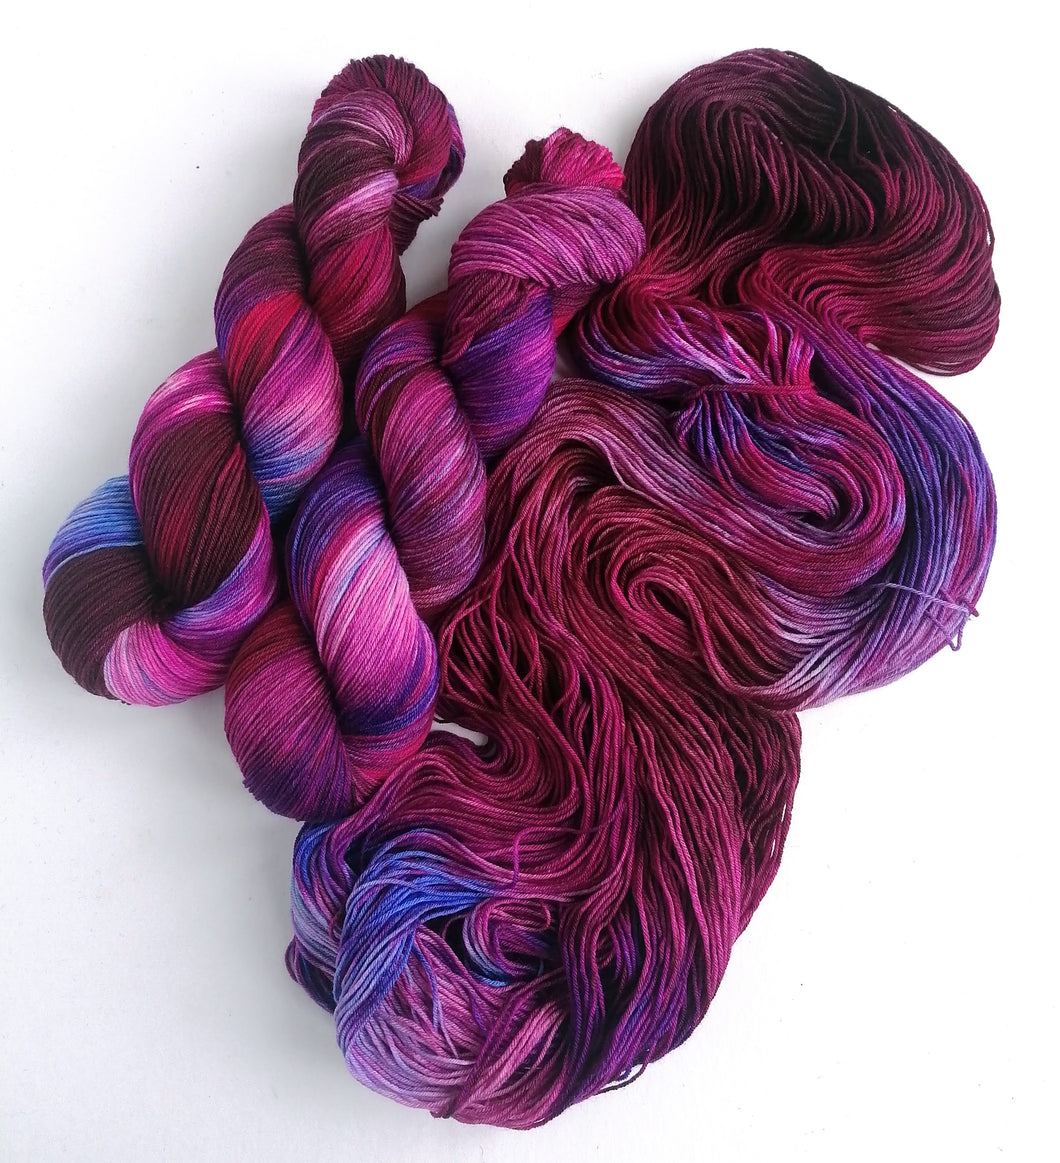 Hand dyed yarn pre-order - Gothic Rose - Dyed to Order.